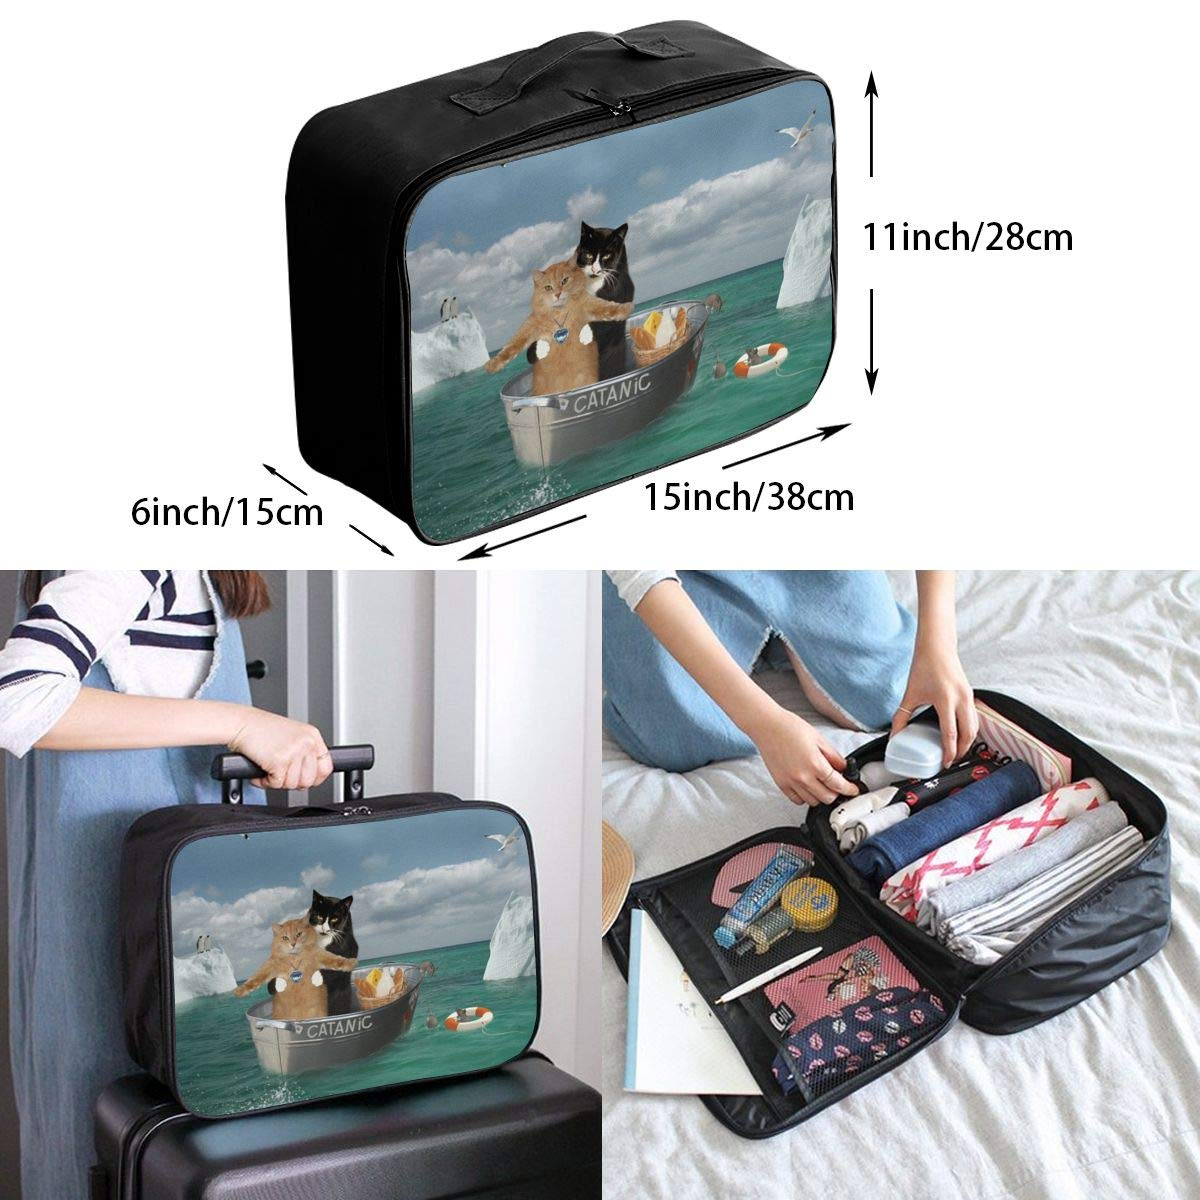 Funny Catanic Cats Titanic Cosplay Travel Lightweight Waterproof Folding Storage Portable Luggage Duffle Tote Bag Large Capacity In Trolley Handle Bags 6x11x15 Inch